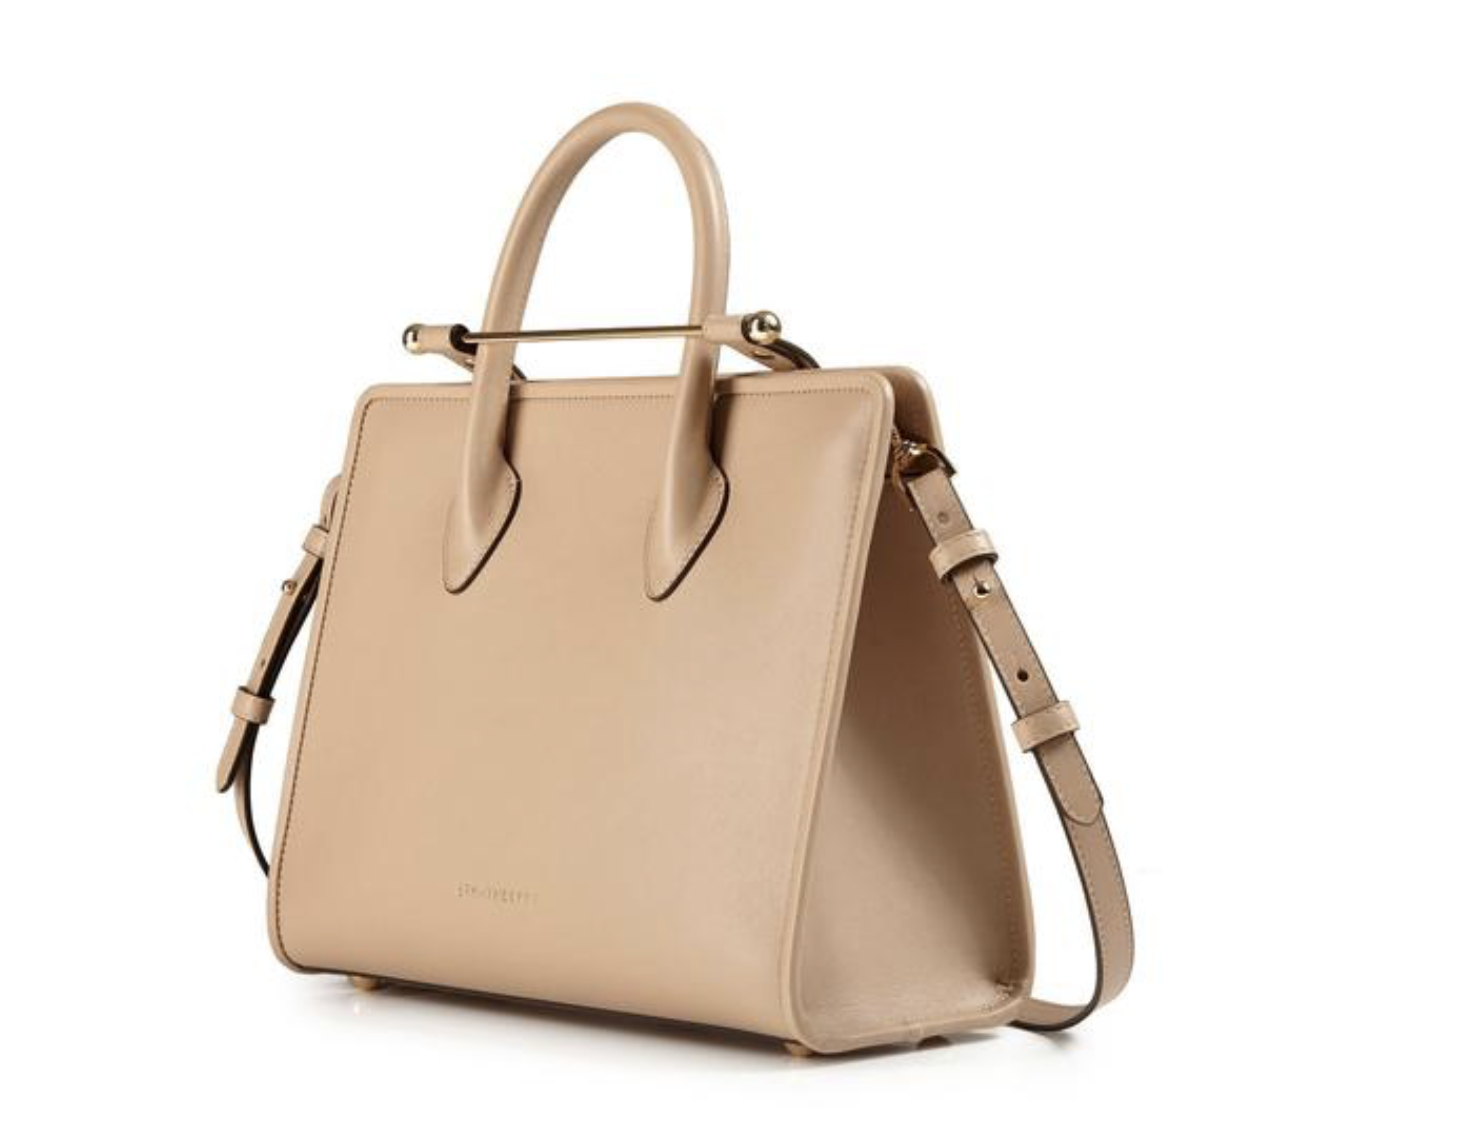 Strathberry midi tote - taupe